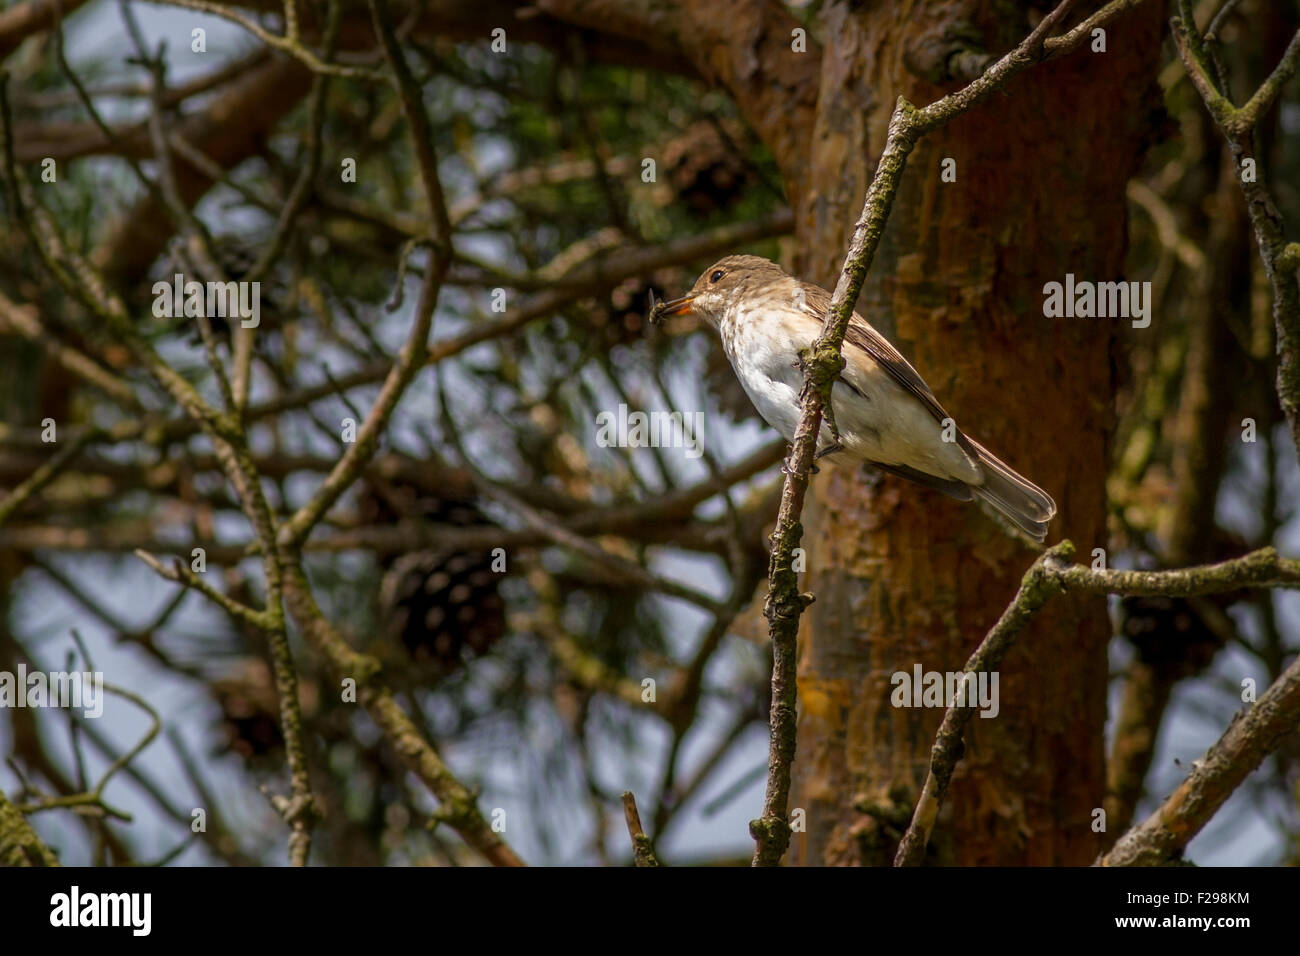 Spotted flycatcher with a fly in its beak that it has just caught. (See image F298KN for it dropping that fly!) - Stock Image